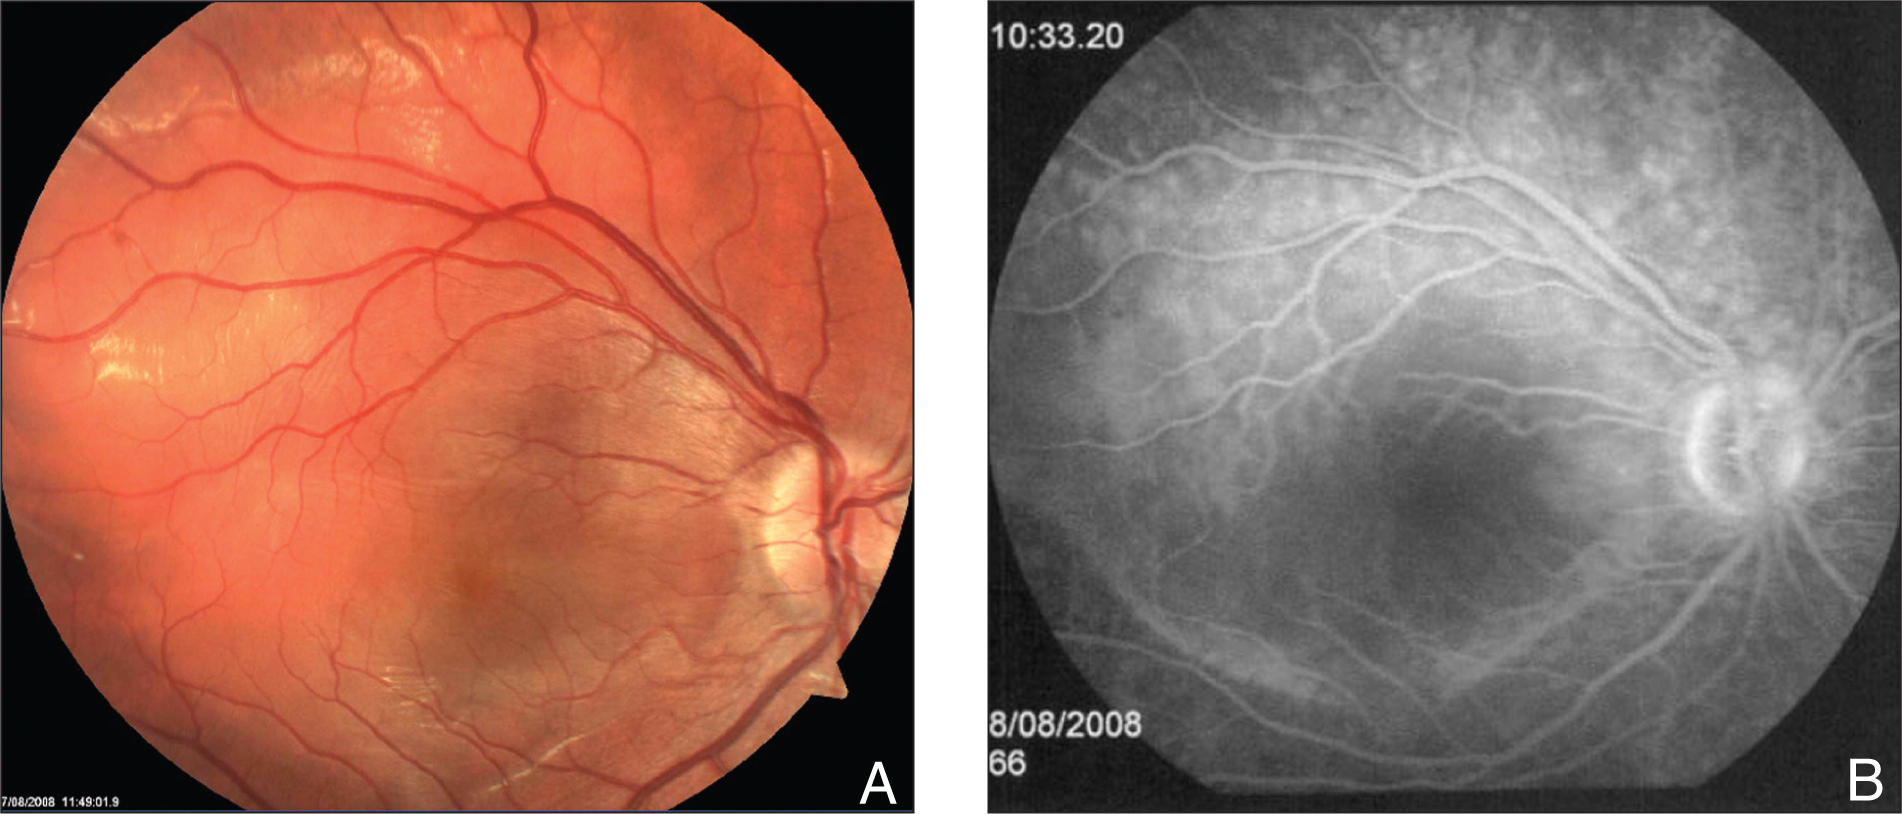 (A) Funduscopy Showing Posterior Pole Edema in the Right Eye that Was Later Confirmed by (B) Fluorescein Angiography.